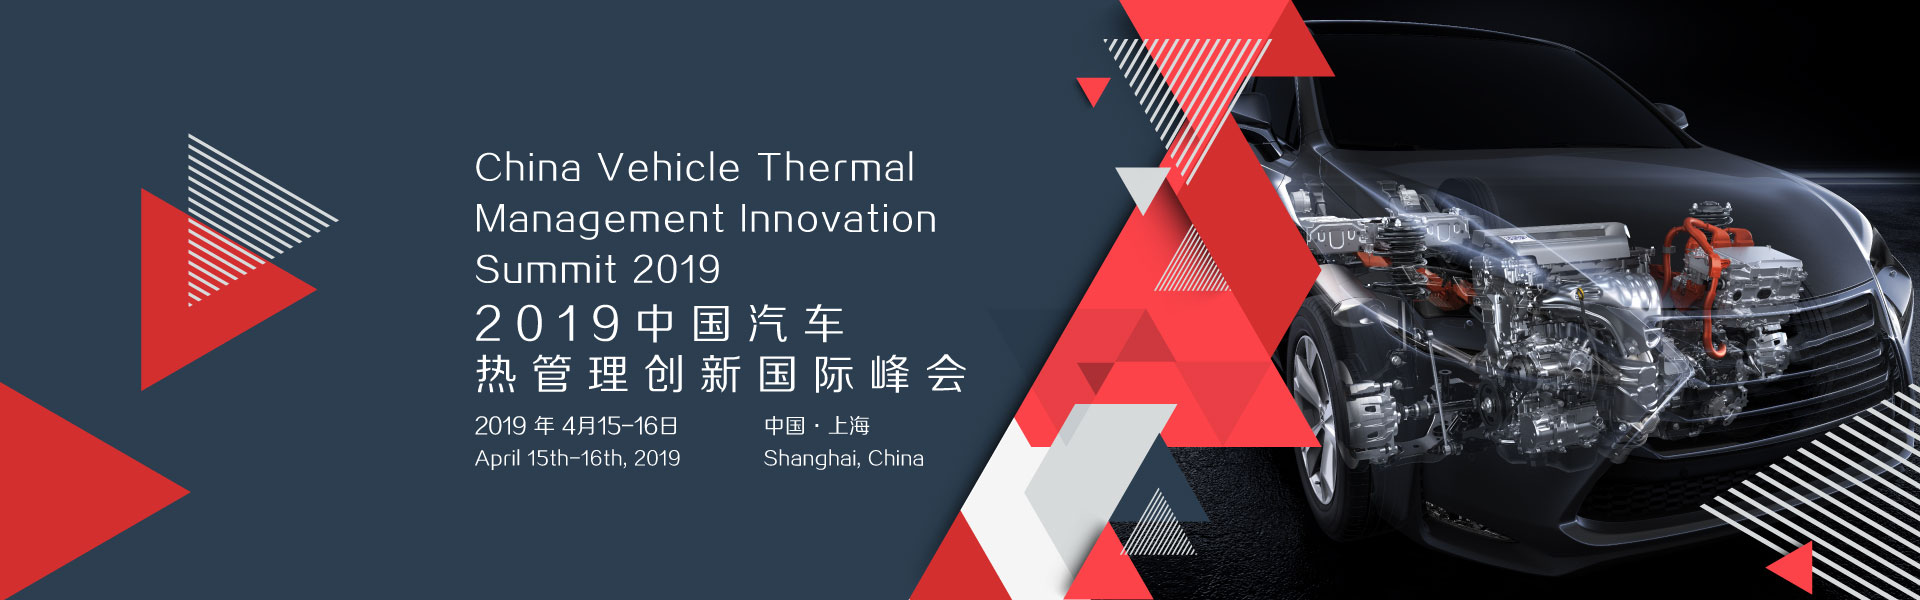 China Vehicle Thermal Management Innovation Summit 2019_ECV International